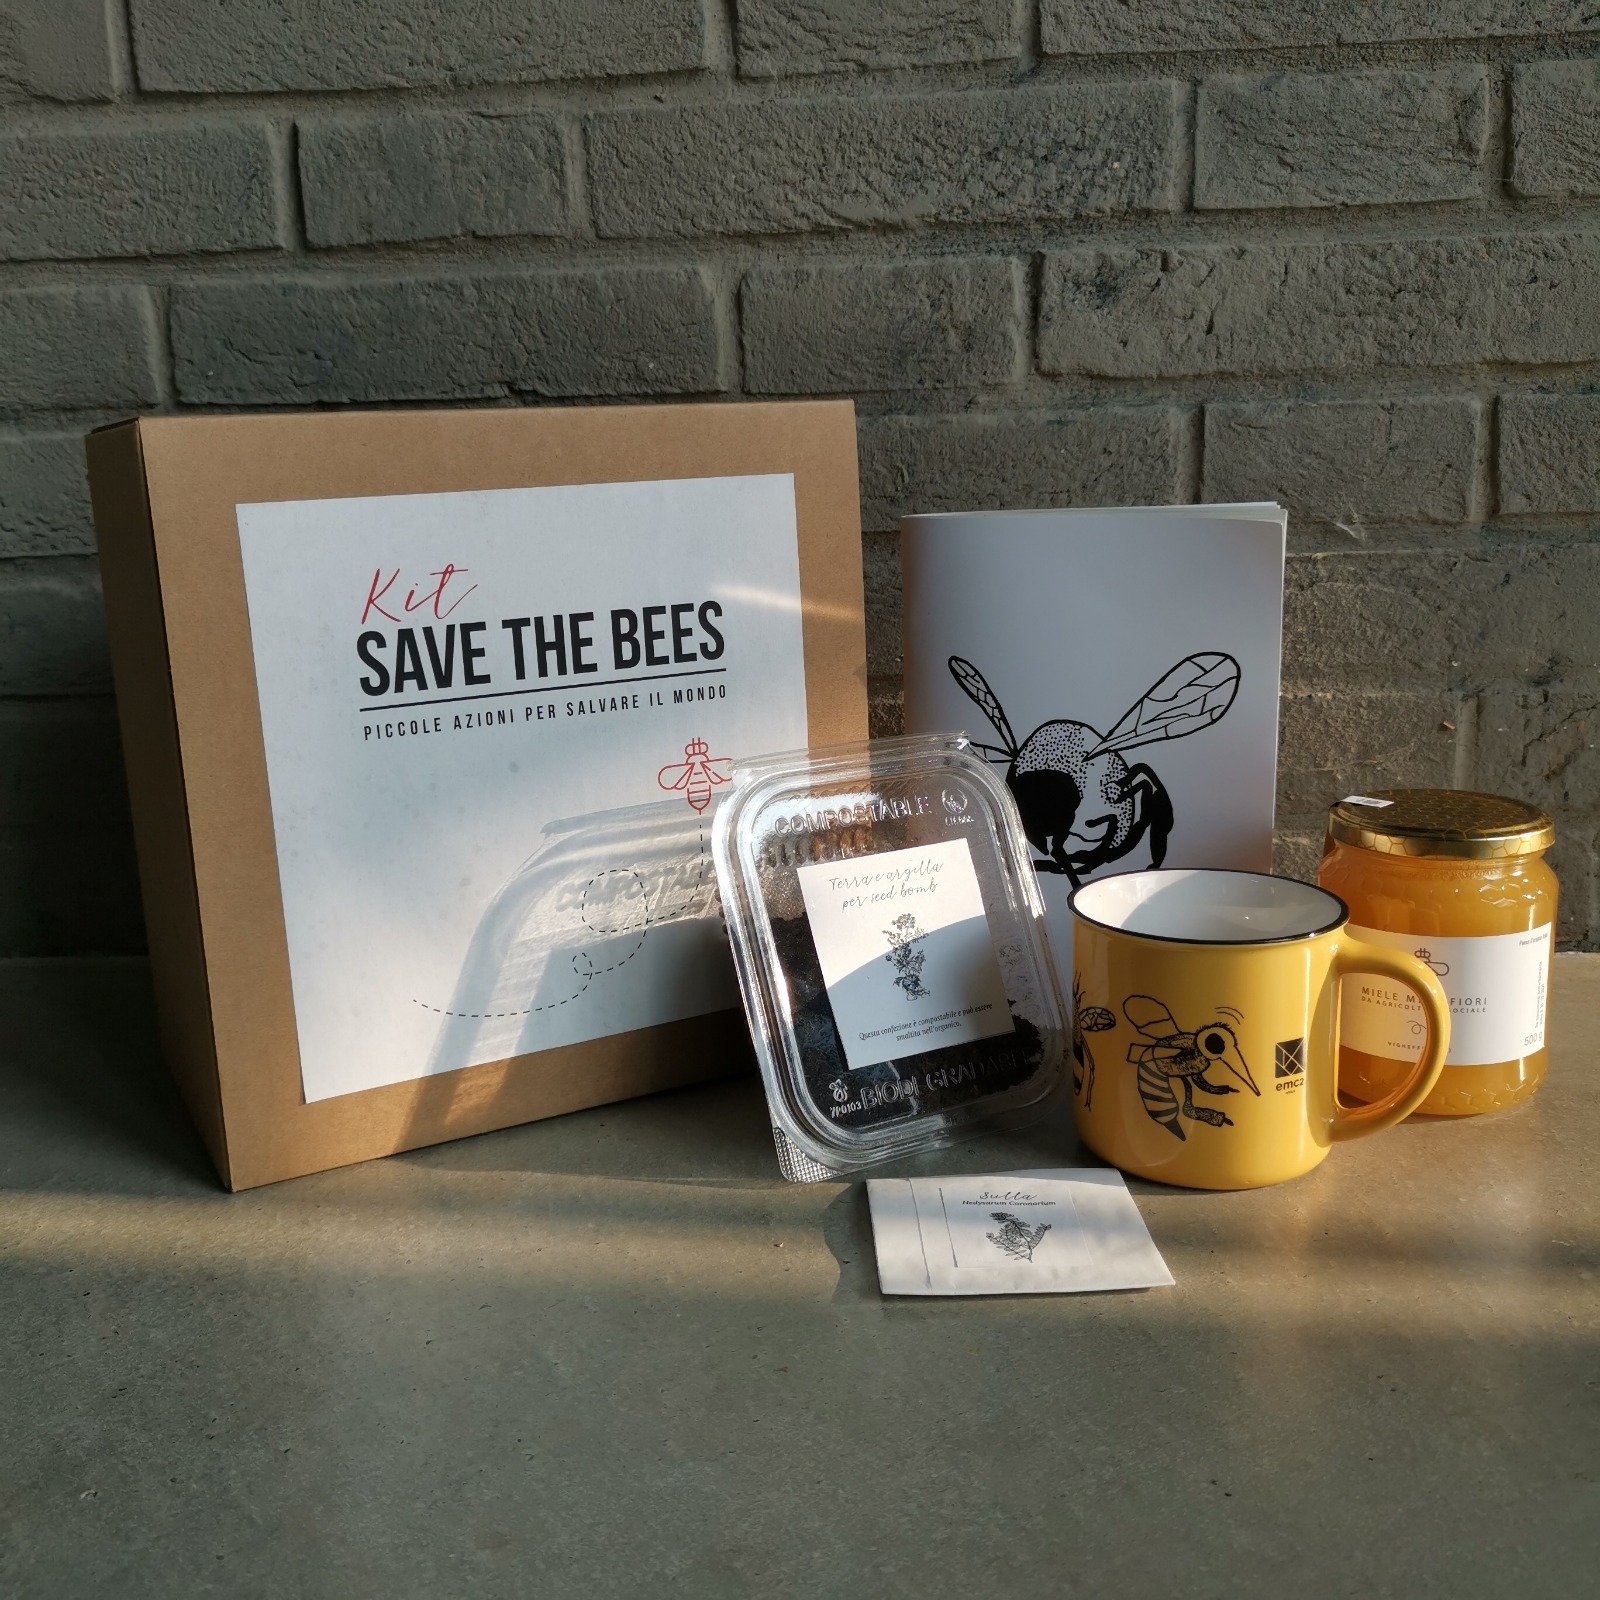 KIT SAVE THE BEES Image